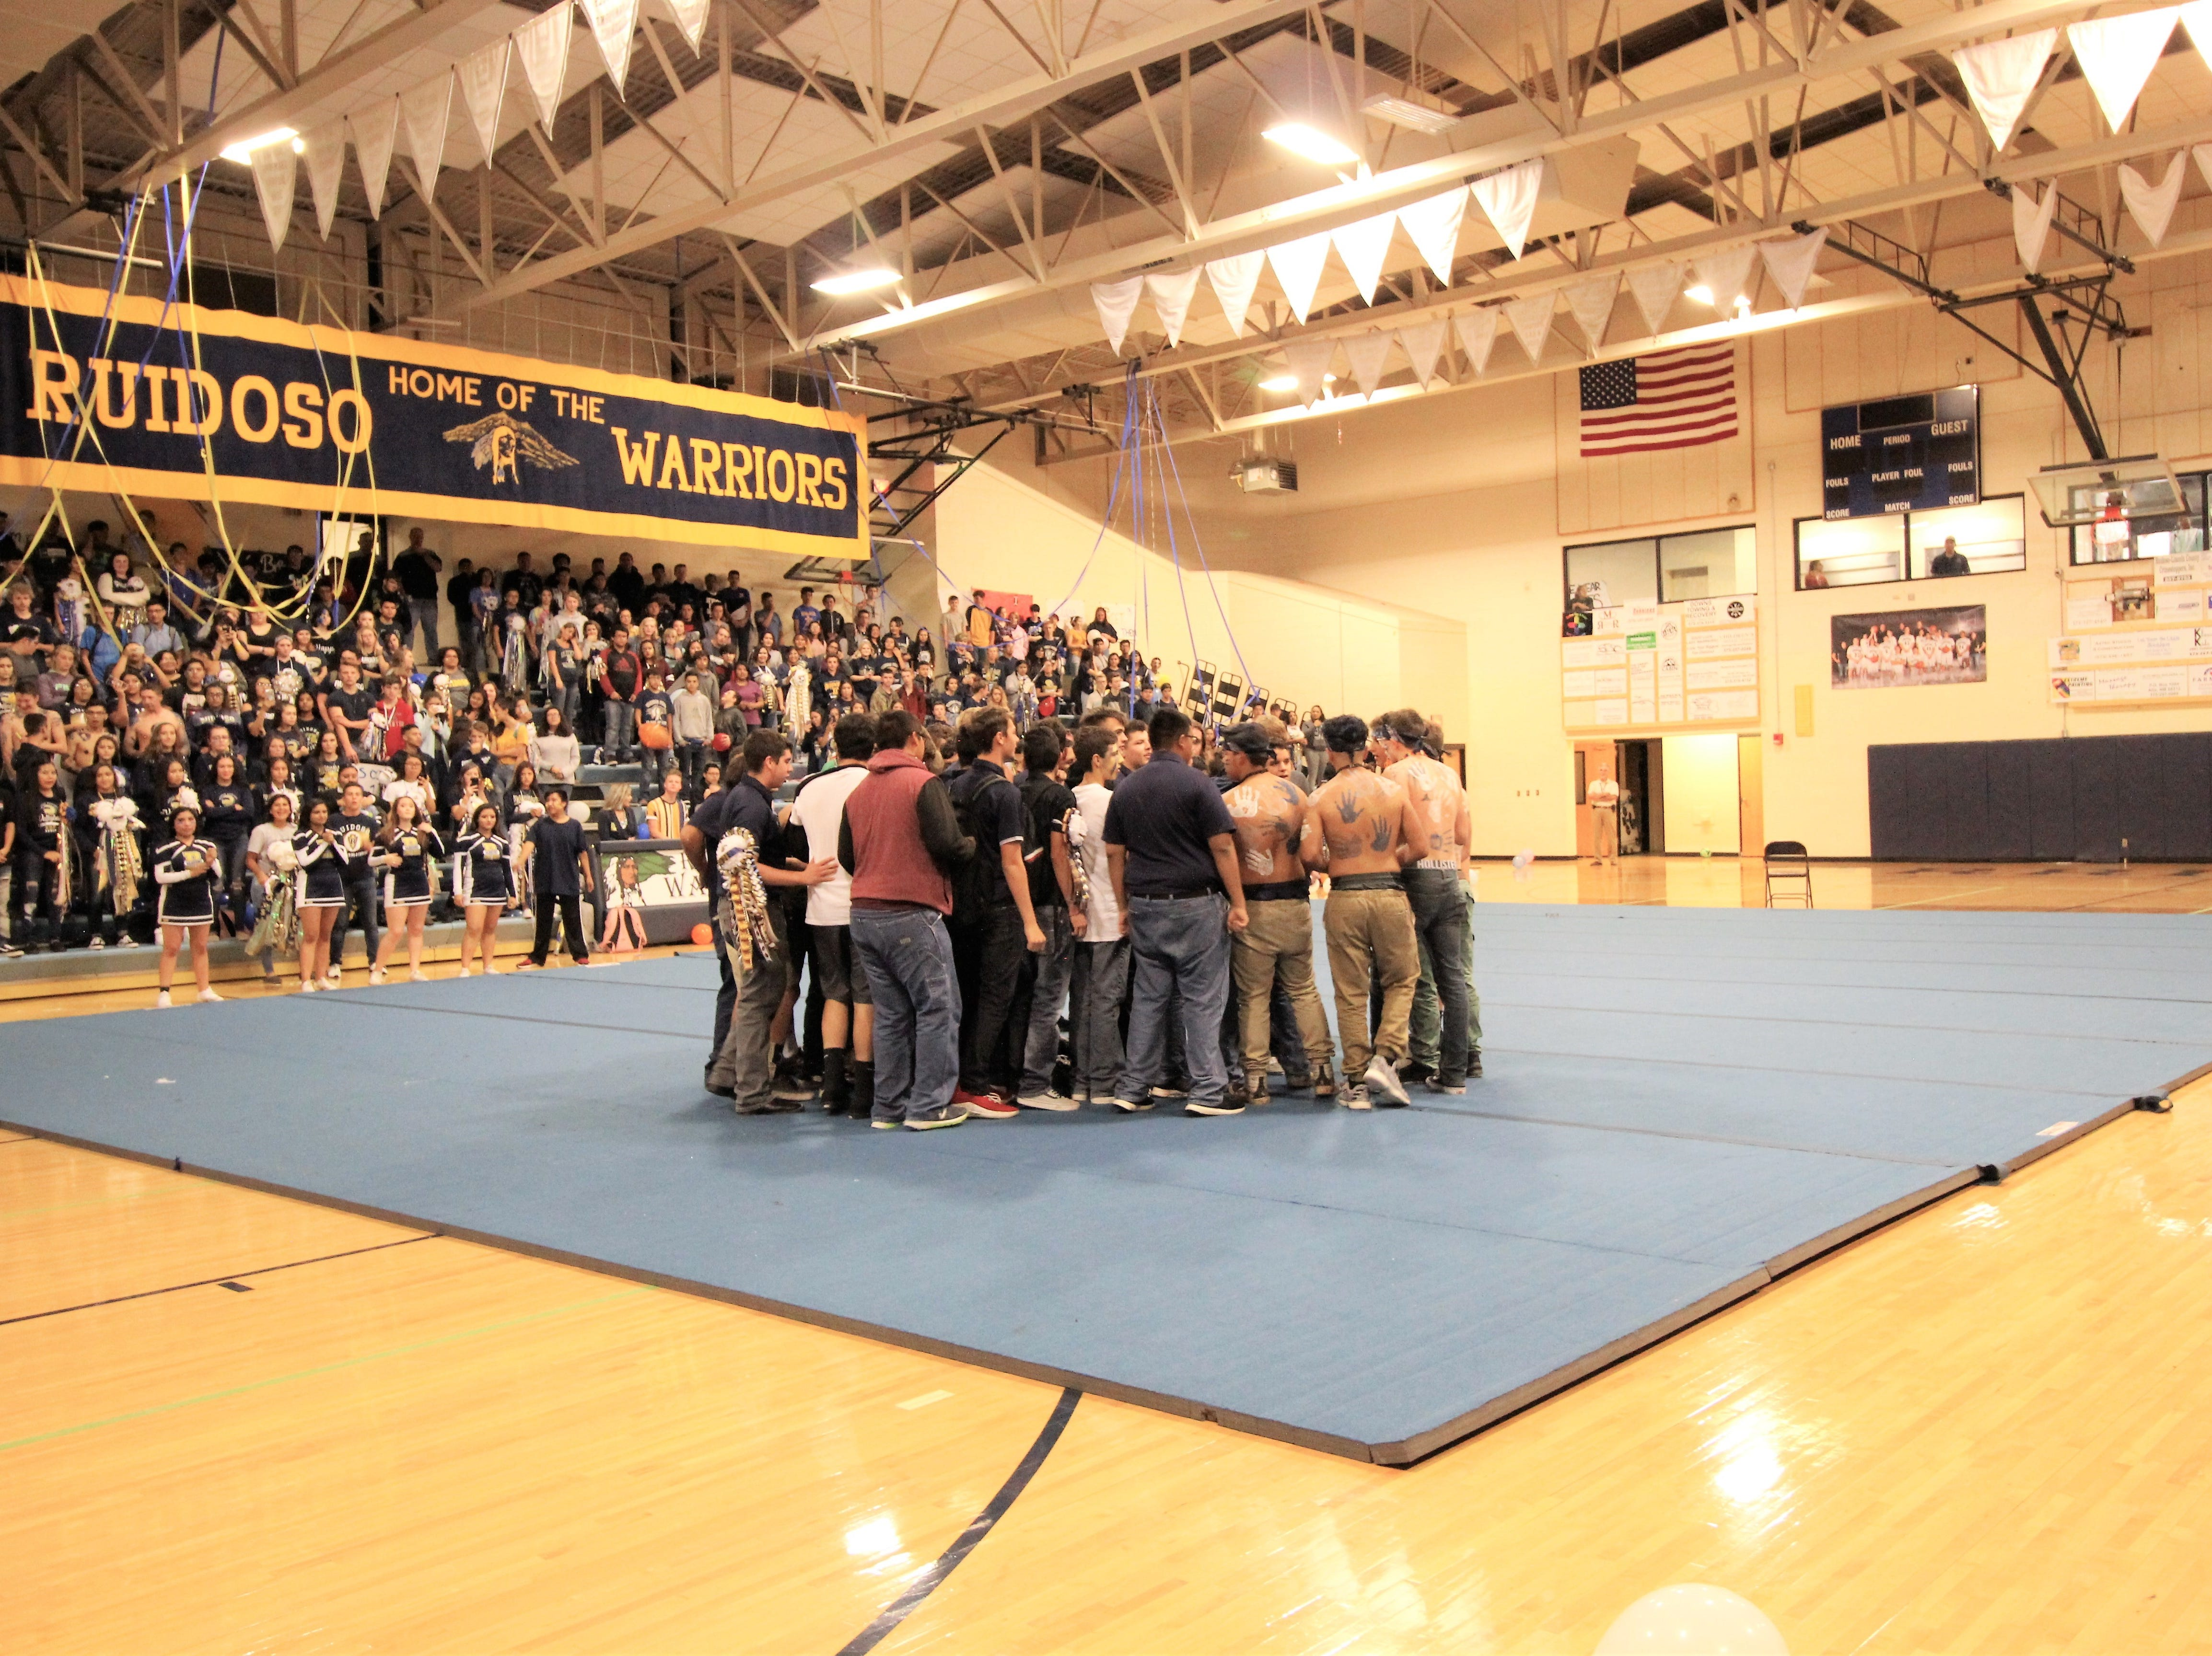 The team huddles at the 2018 Ruidoso High School pep rally chanting on the student body as they hope to beat their rivals the Tularosa Wildcats at their 2018 Homecoming game.